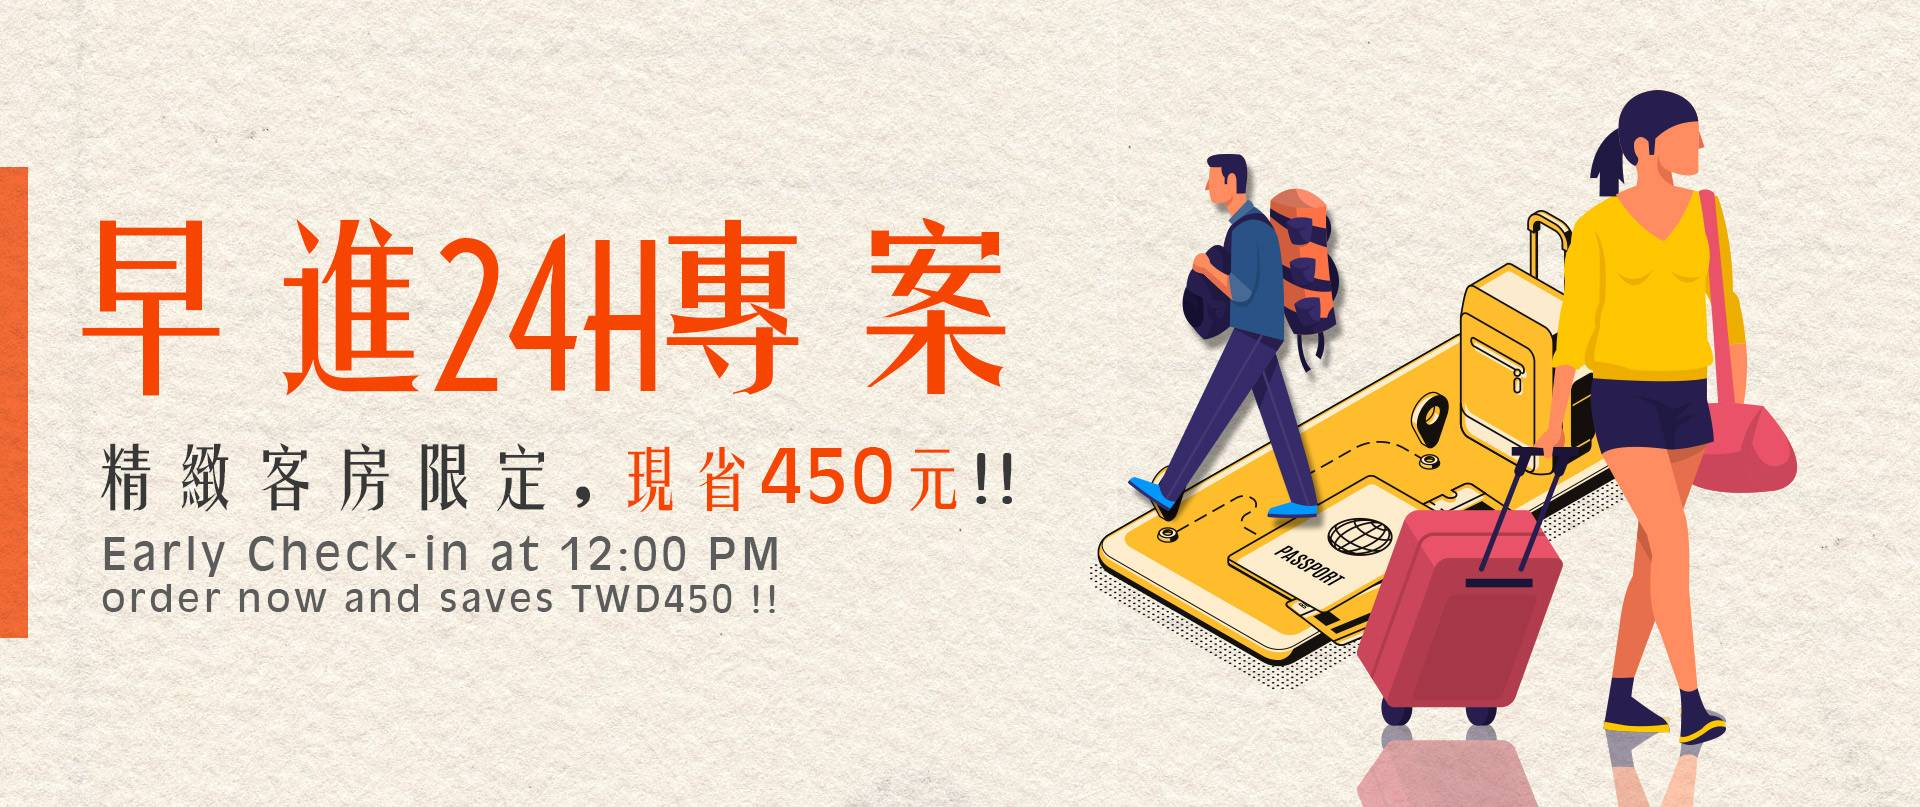 https://booking.taipeiinngroup.com/nv/images/suite/577.jpg